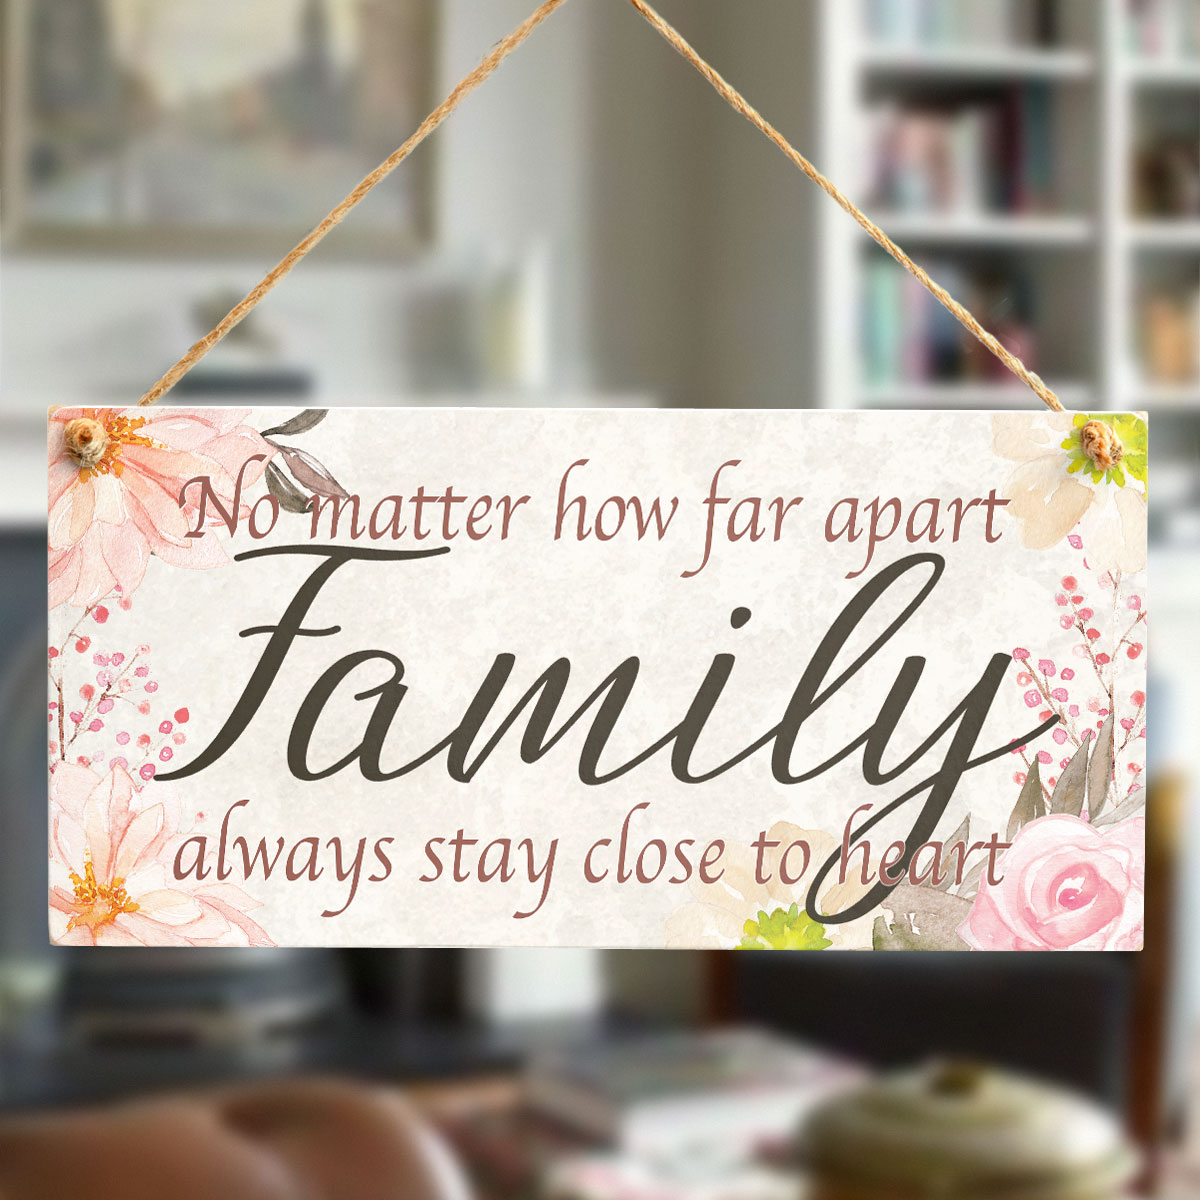 No matter how far apart Family always stay close to heart - Beautiful Handmade Sign